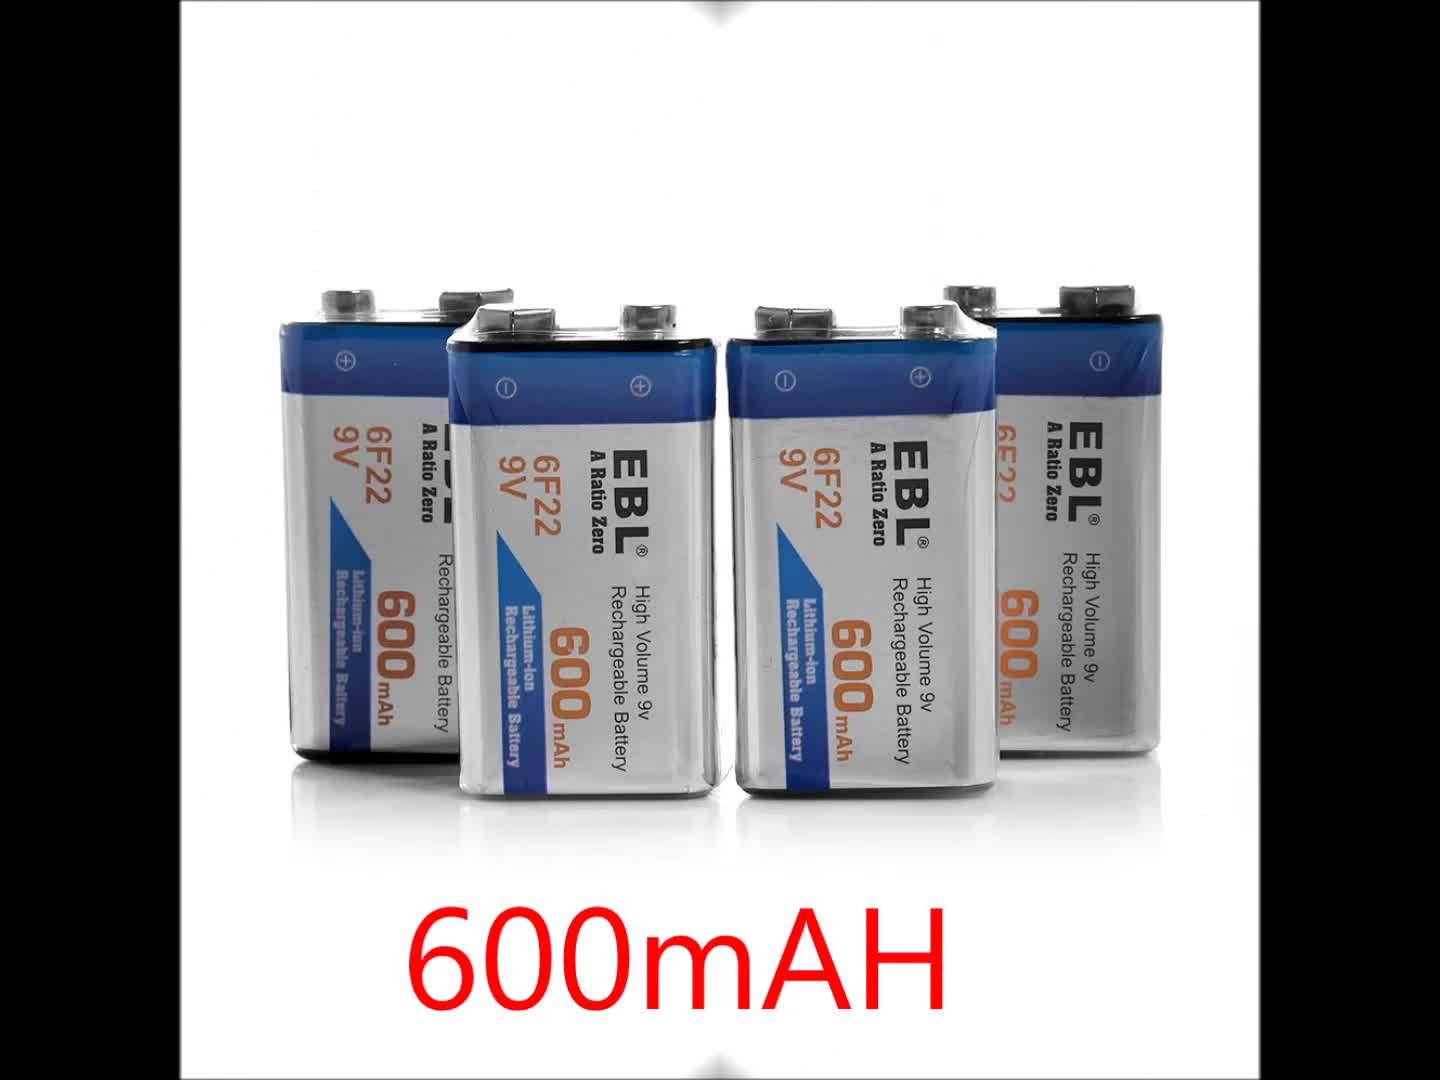 EBL Quick Battery Charger LCD 6 Slot Universal Battery Charger for AA AAA 9V C D Rechargeable Battery